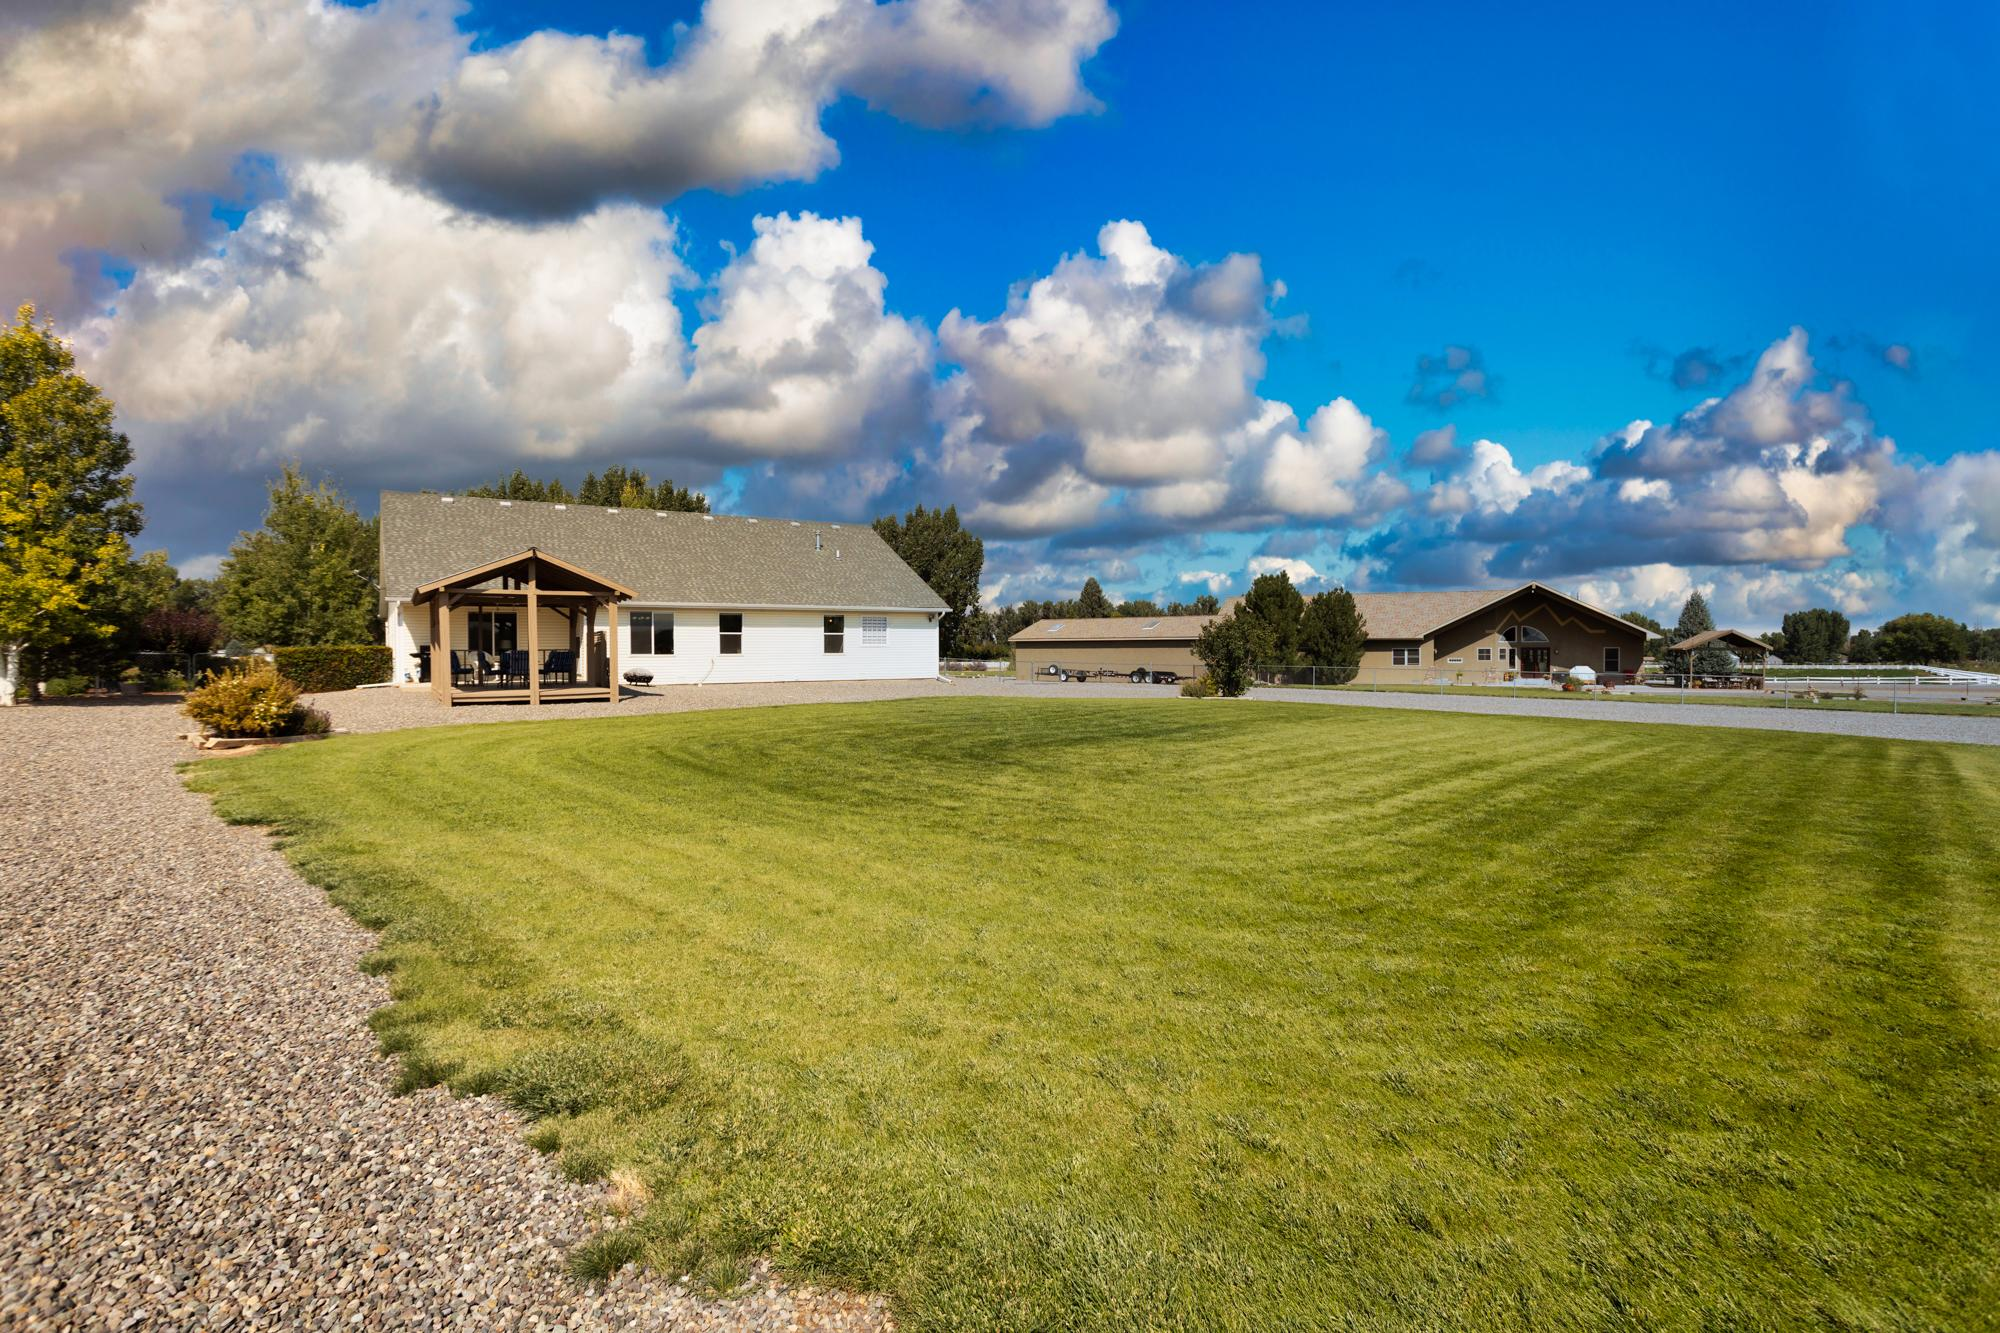 Back Yard - 15552 6120 Rd Montrose, CO 81403 - Atha Team Country Real Estate